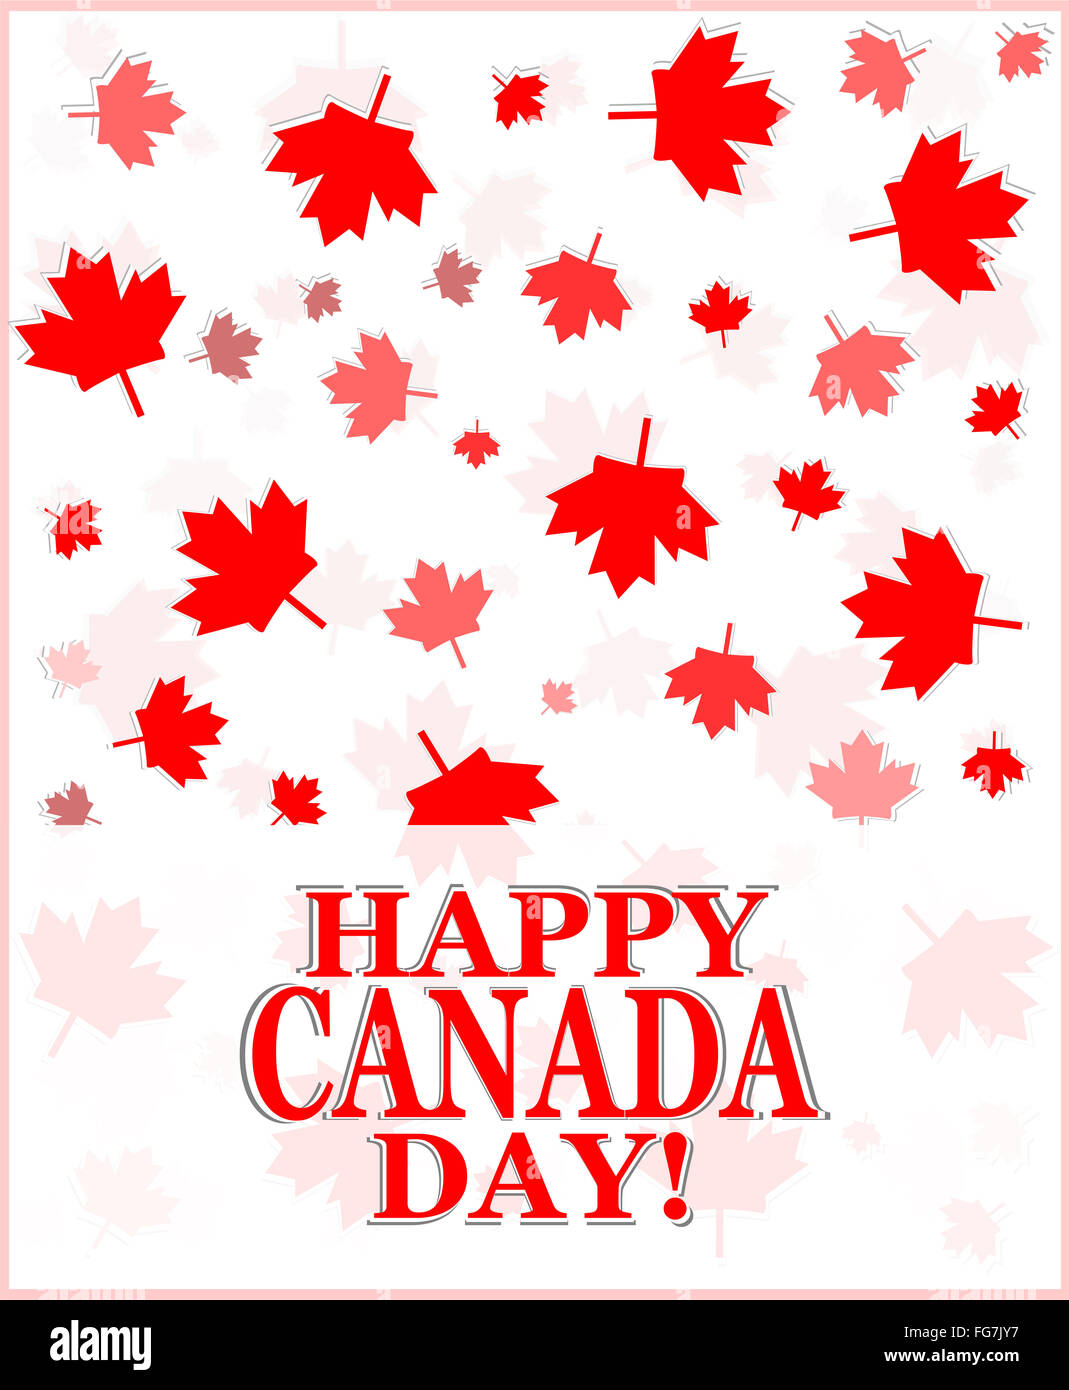 Happy canada day greetings card stock photo 96054875 alamy happy canada day greetings card m4hsunfo